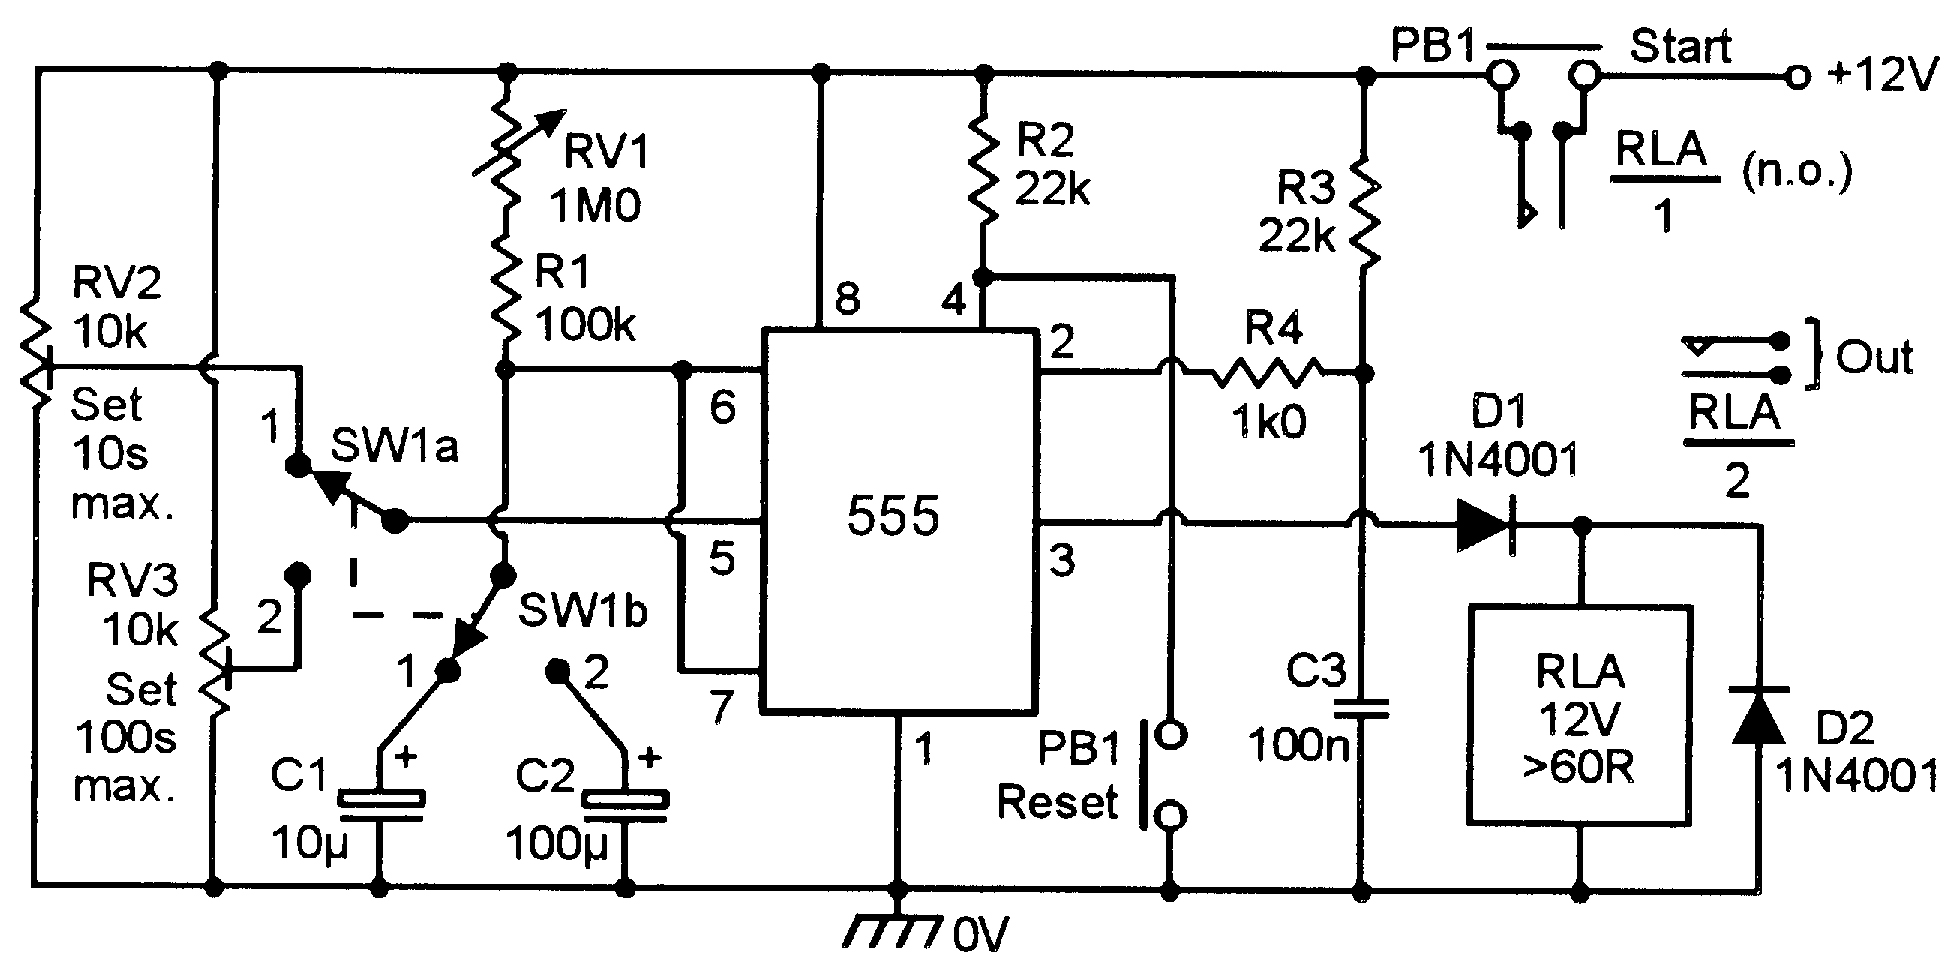 555 Monostable Circuits Nuts Volts Magazine In The Astable Operation Mode Timer Circuit Triggers Precision Compensated Two Range 09s 10s 9s 100s